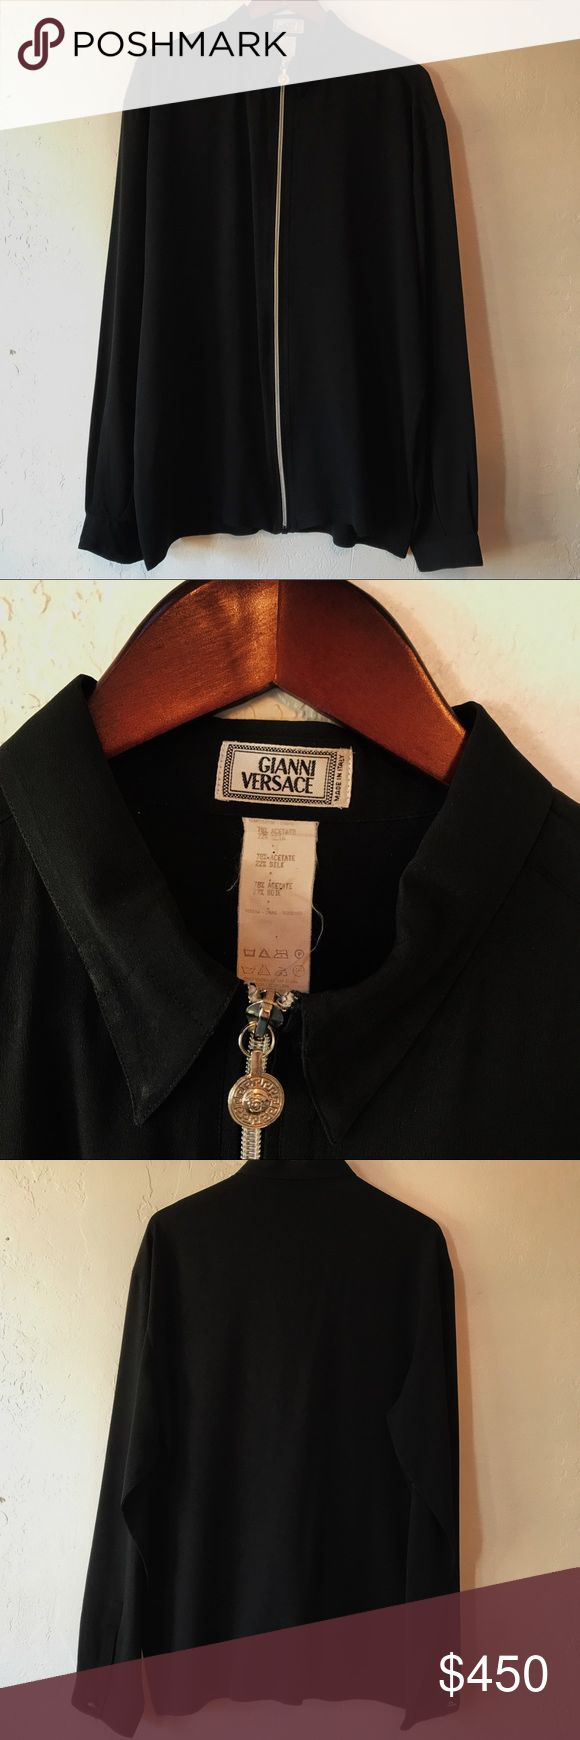 Vintage Gianni Versace Shirt Vintage Gianni Versace long sleeve shirt with zipper up the front. Great condition. Rare find. Best offer will also be considered. Versace Shirts Dress Shirts